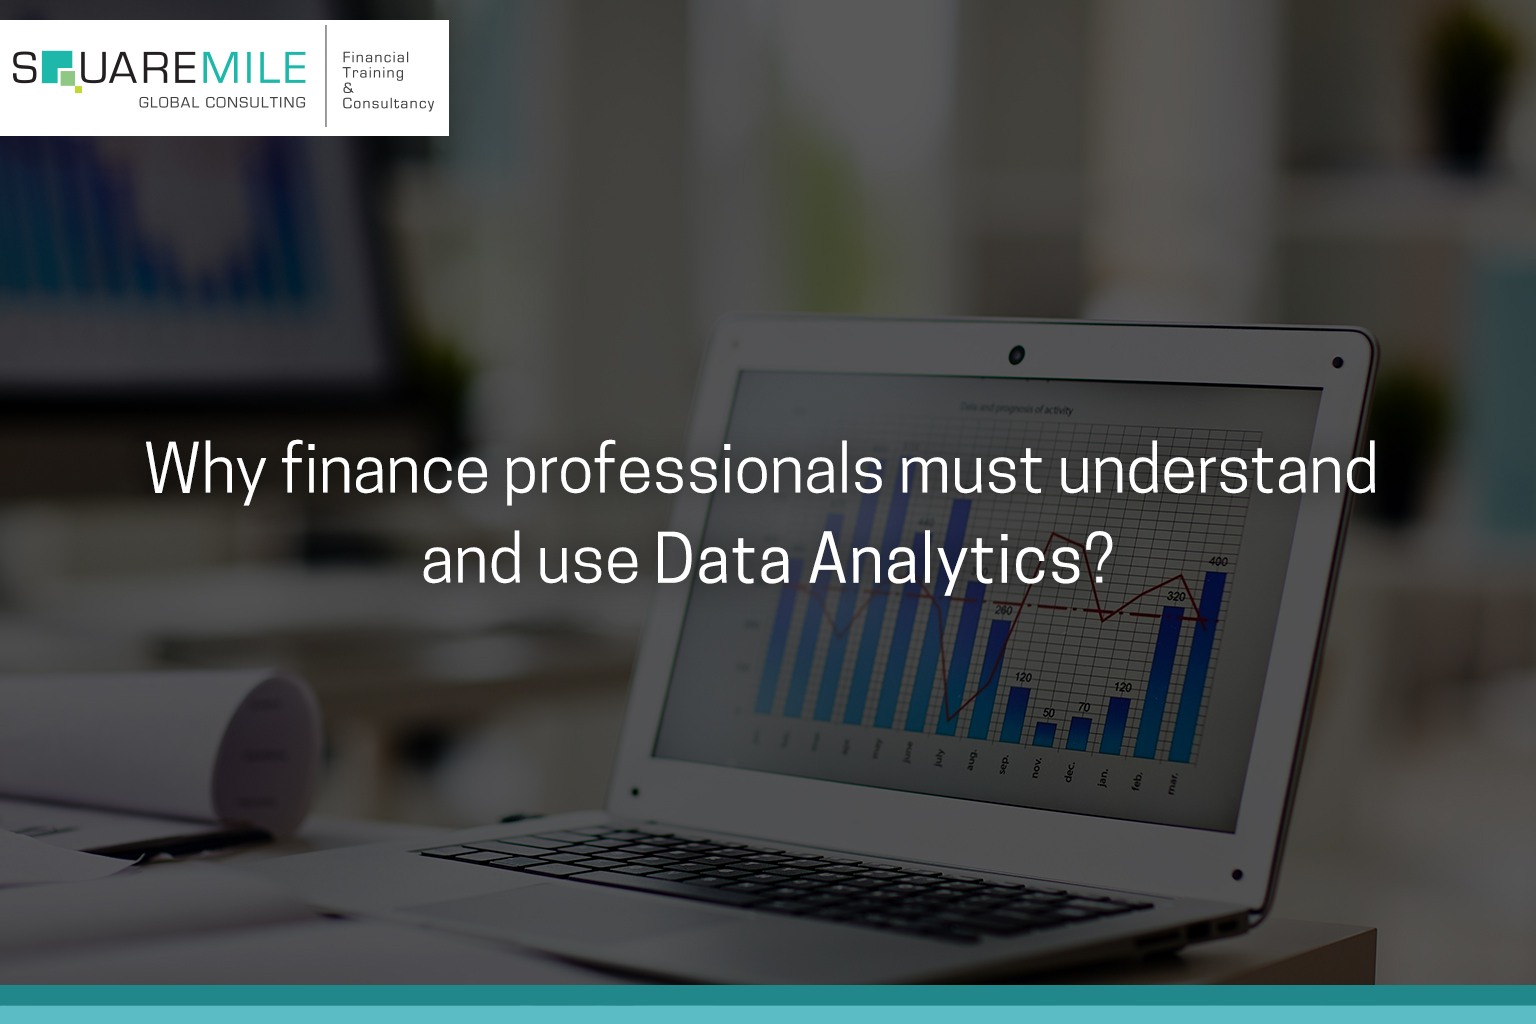 Why finance professionals must understand and use Data Analytics